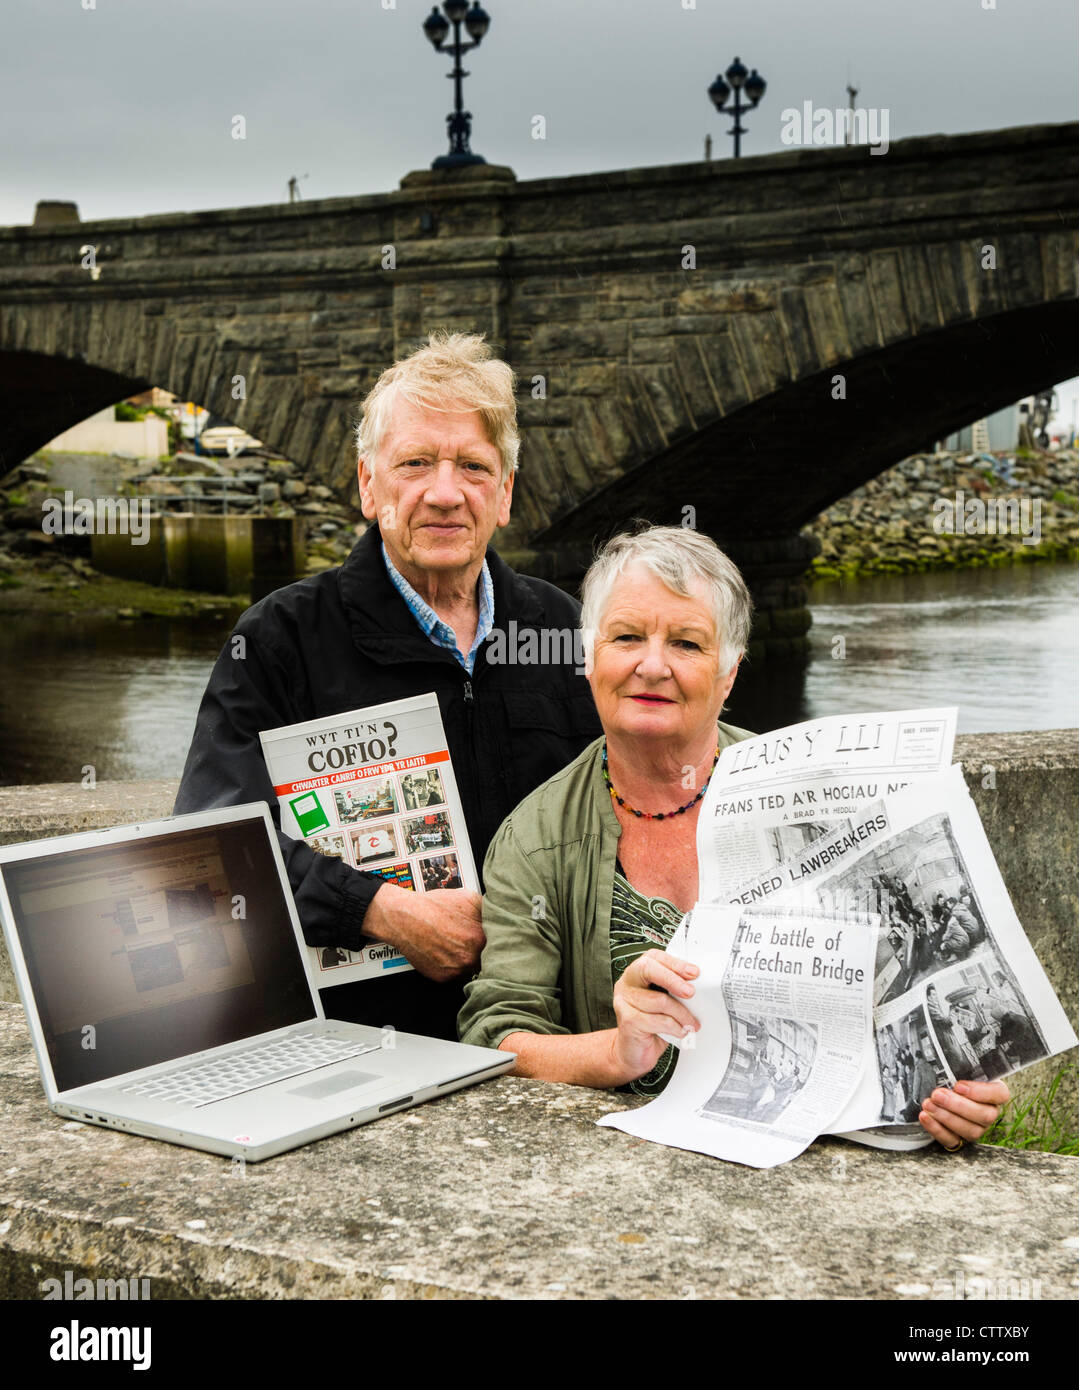 Megan and Gwilym Tudur who took part in the first ever sit-down protest by Cymdeithas yr Iaith at Trefechan Bridge - Stock Image